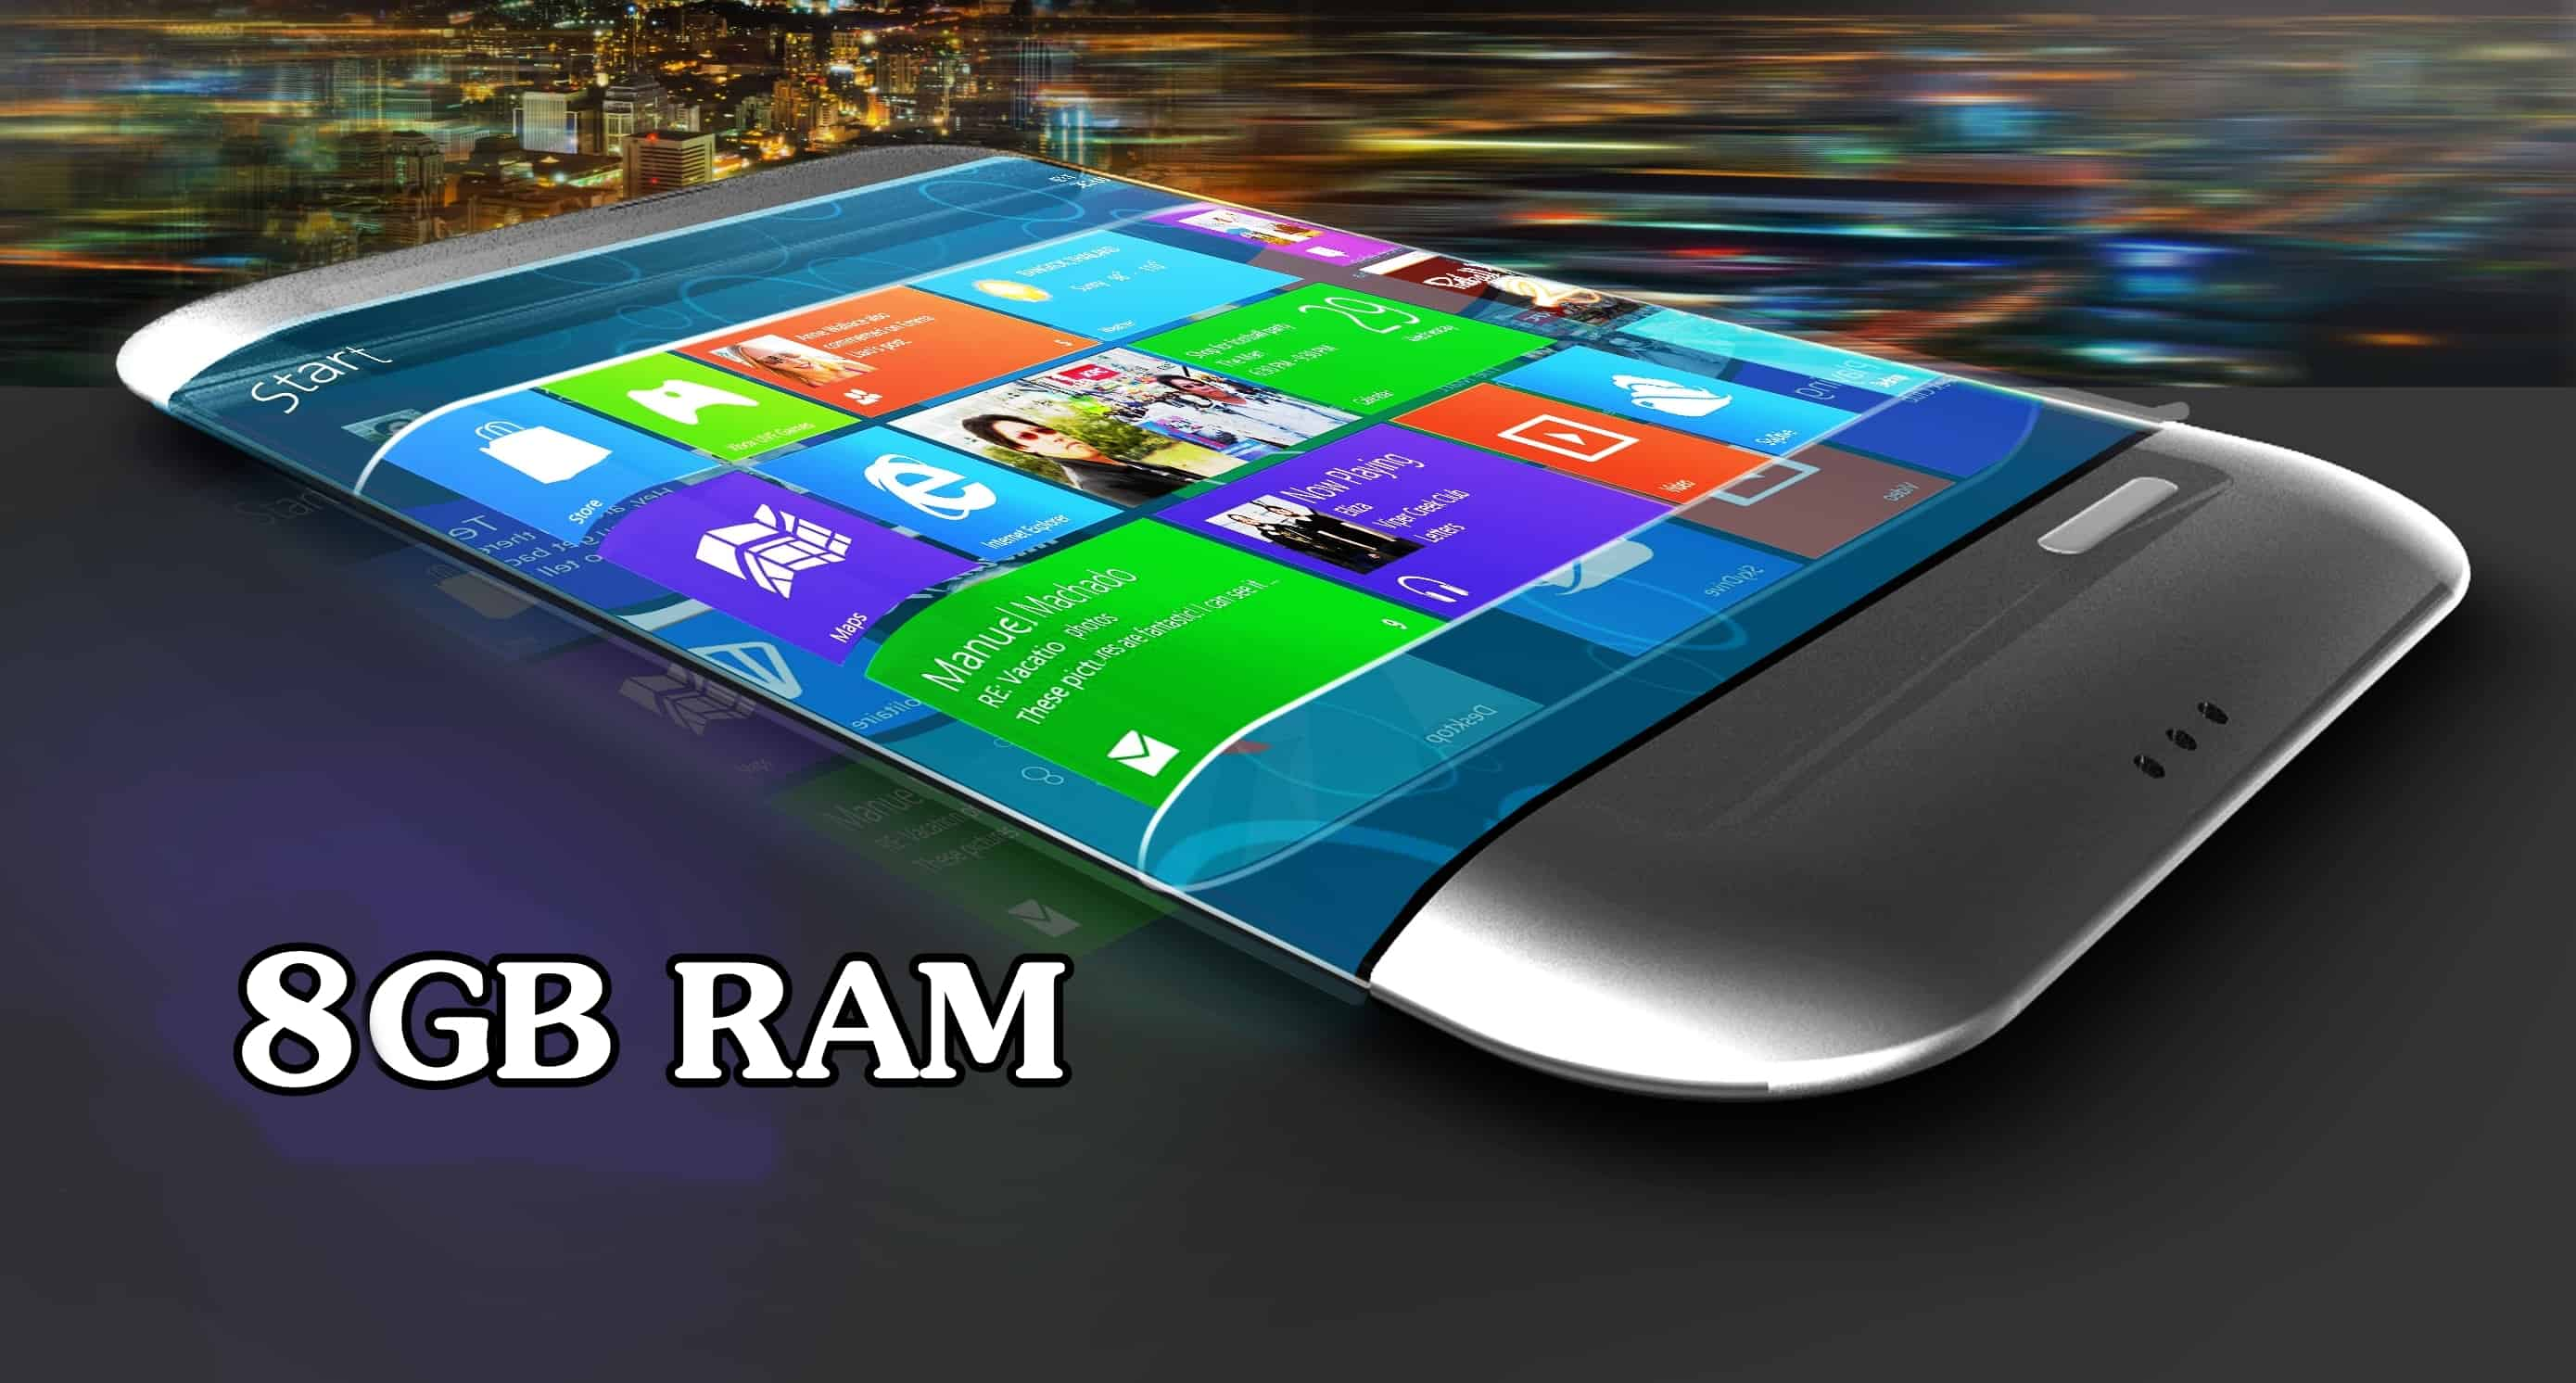 8gb ram smartphone is an upcoming disaster price pony. Black Bedroom Furniture Sets. Home Design Ideas